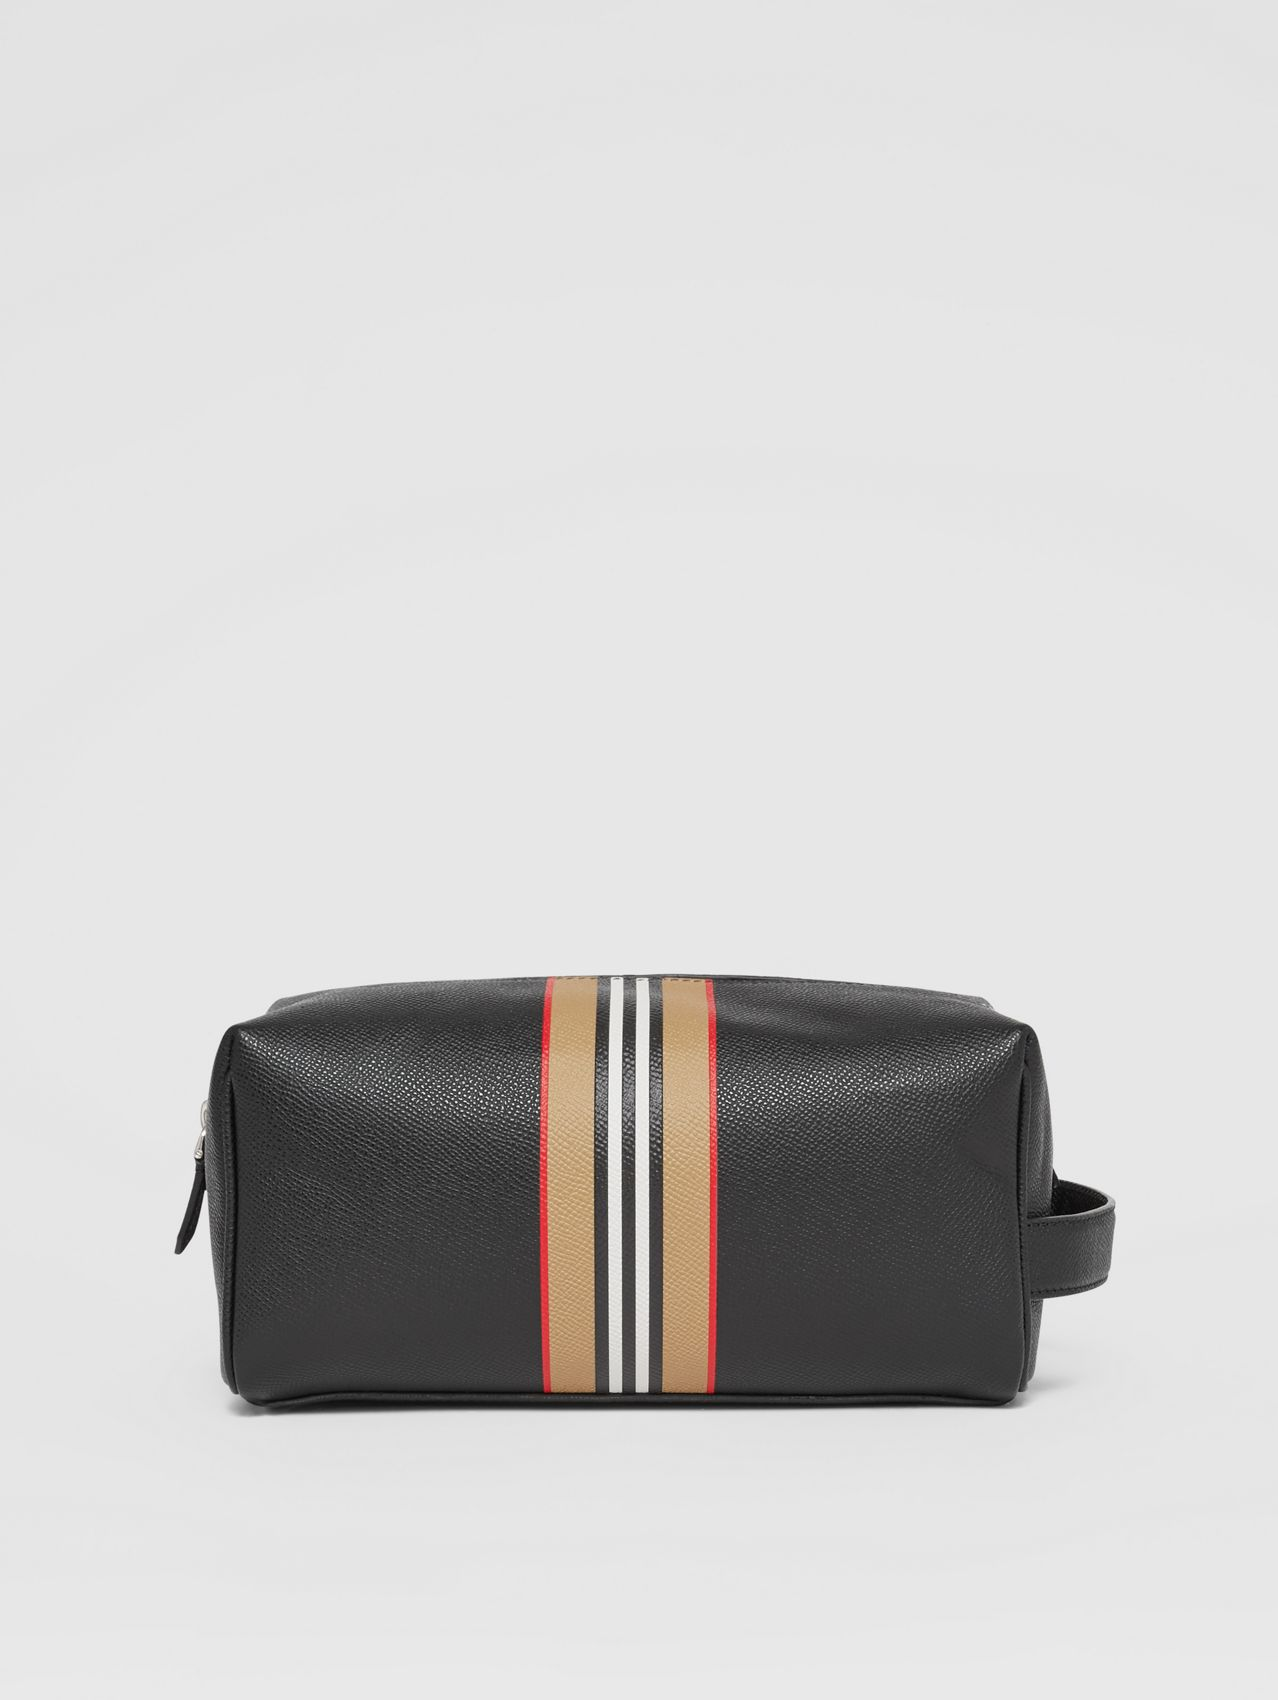 Logo and Icon Stripe Print Leather Travel Pouch in Black